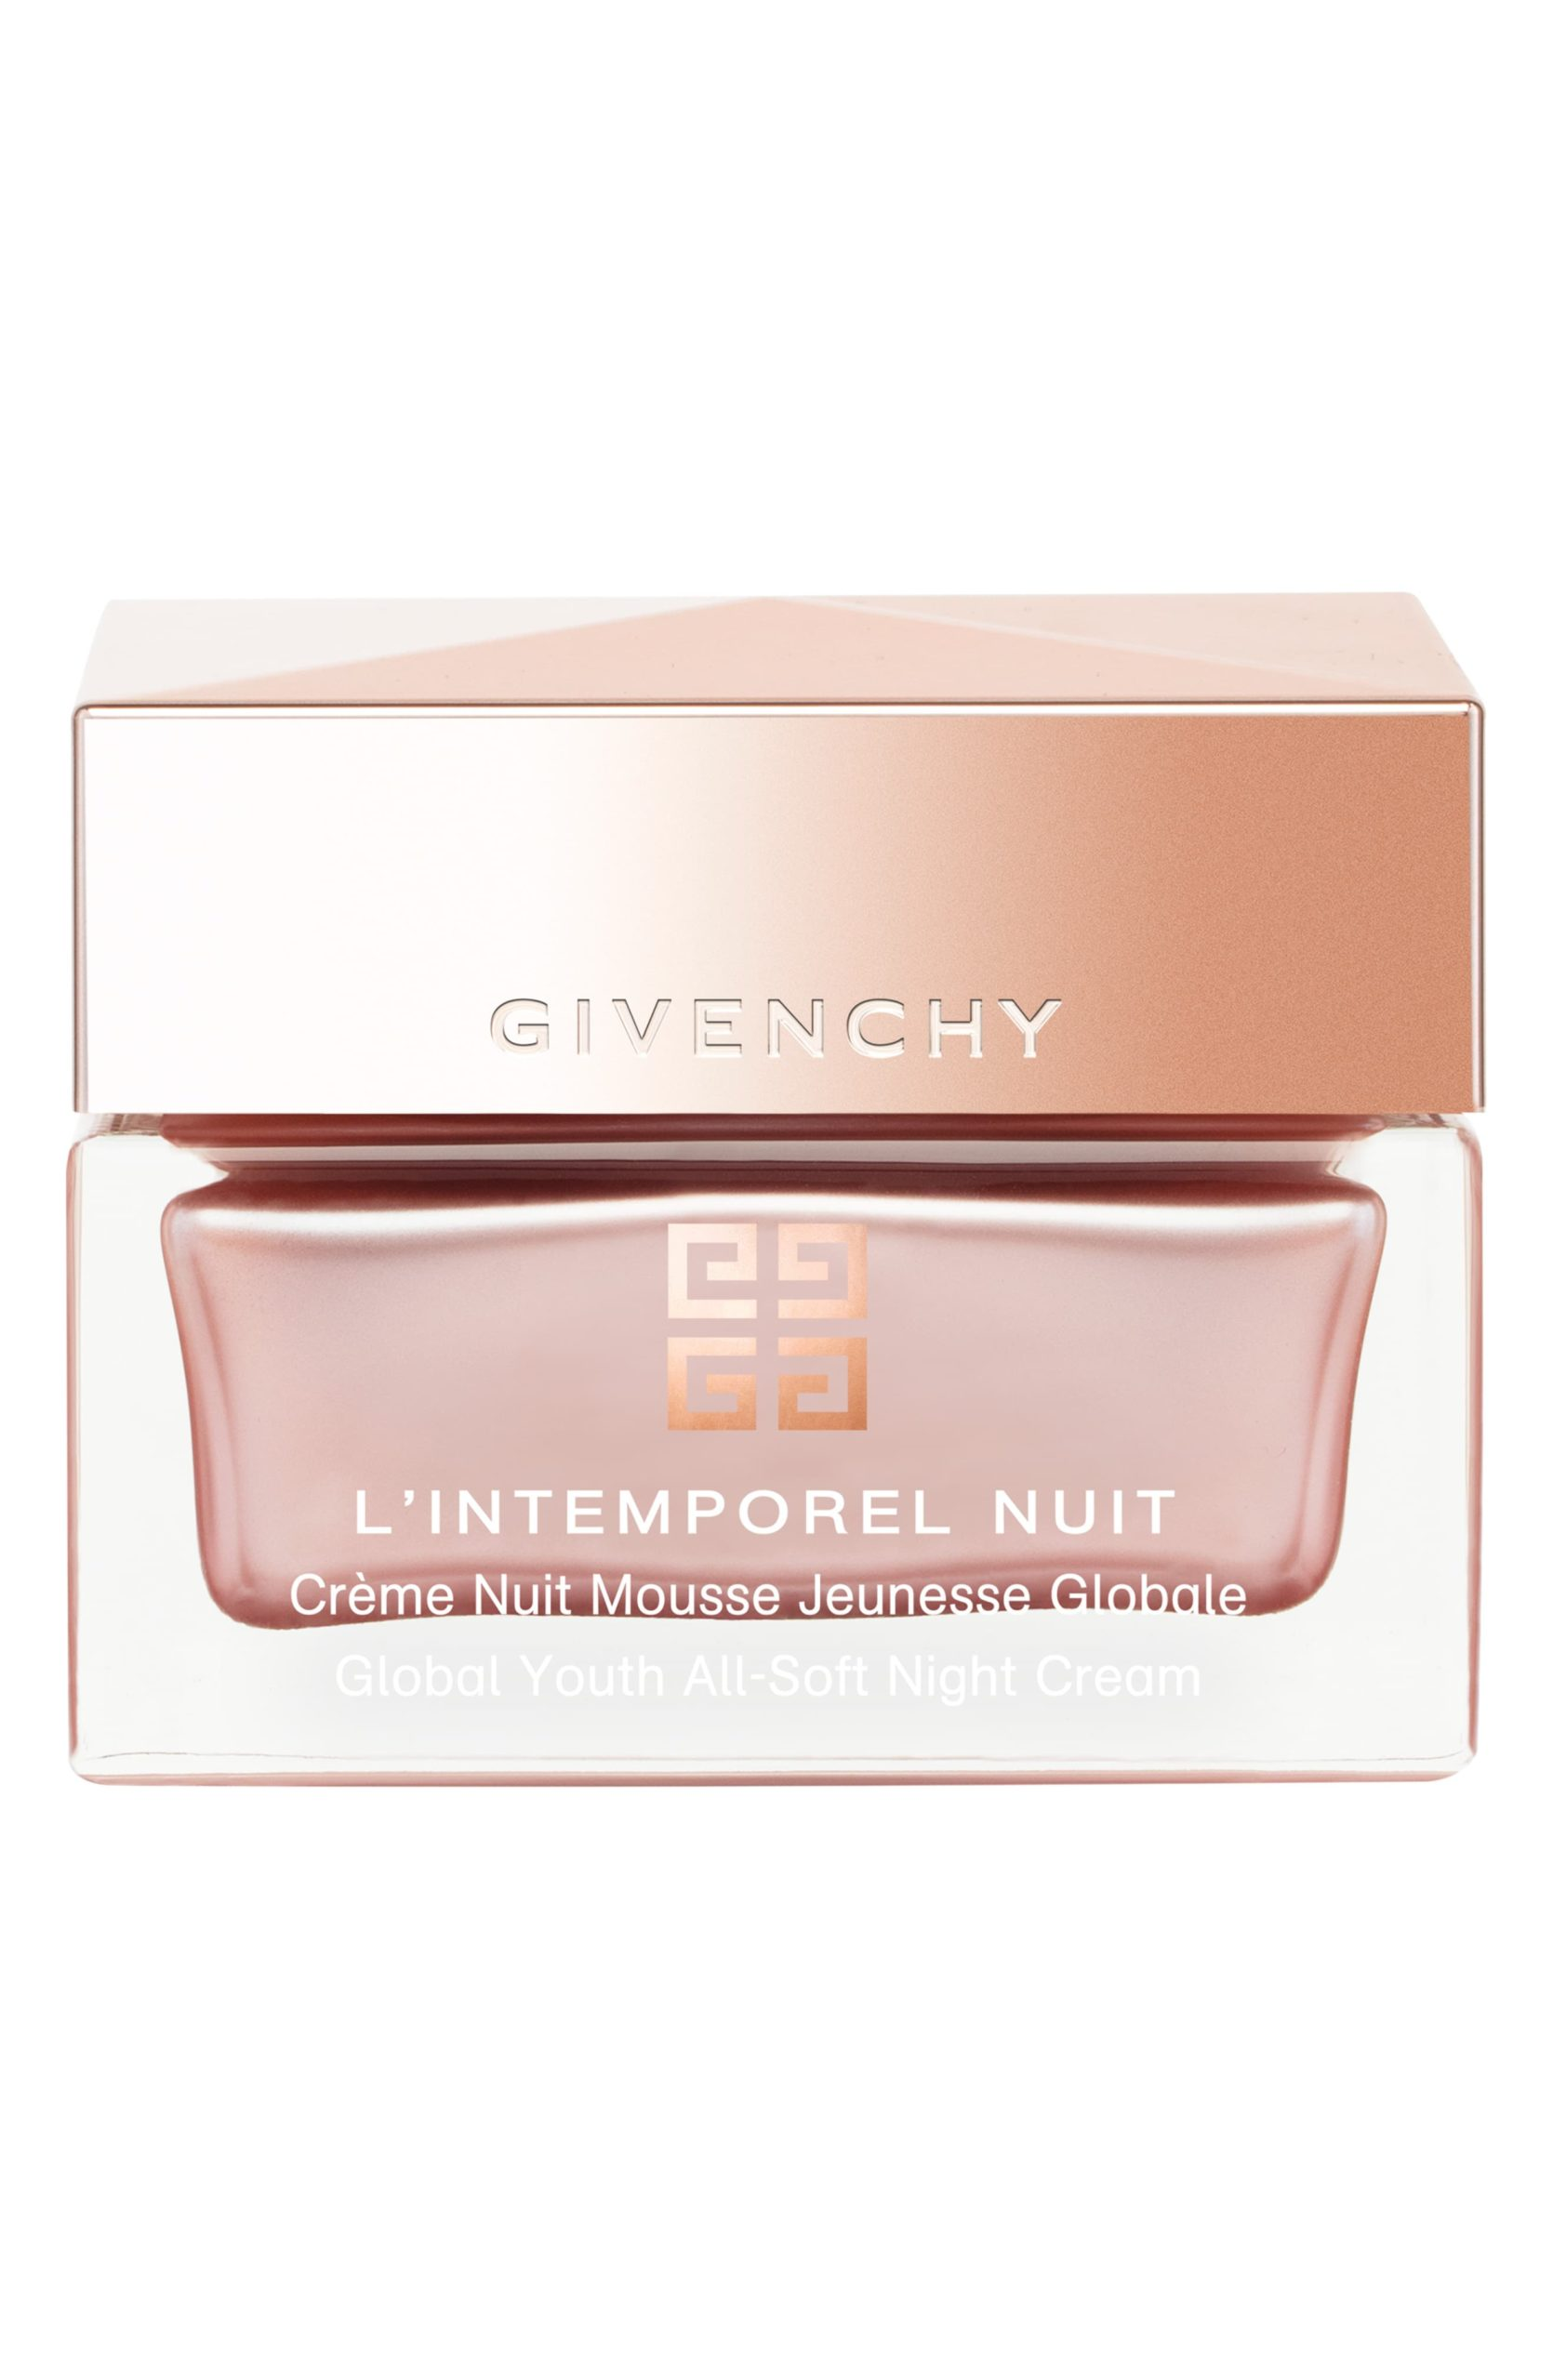 L'intemporel Global Youth All-soft Night Cream